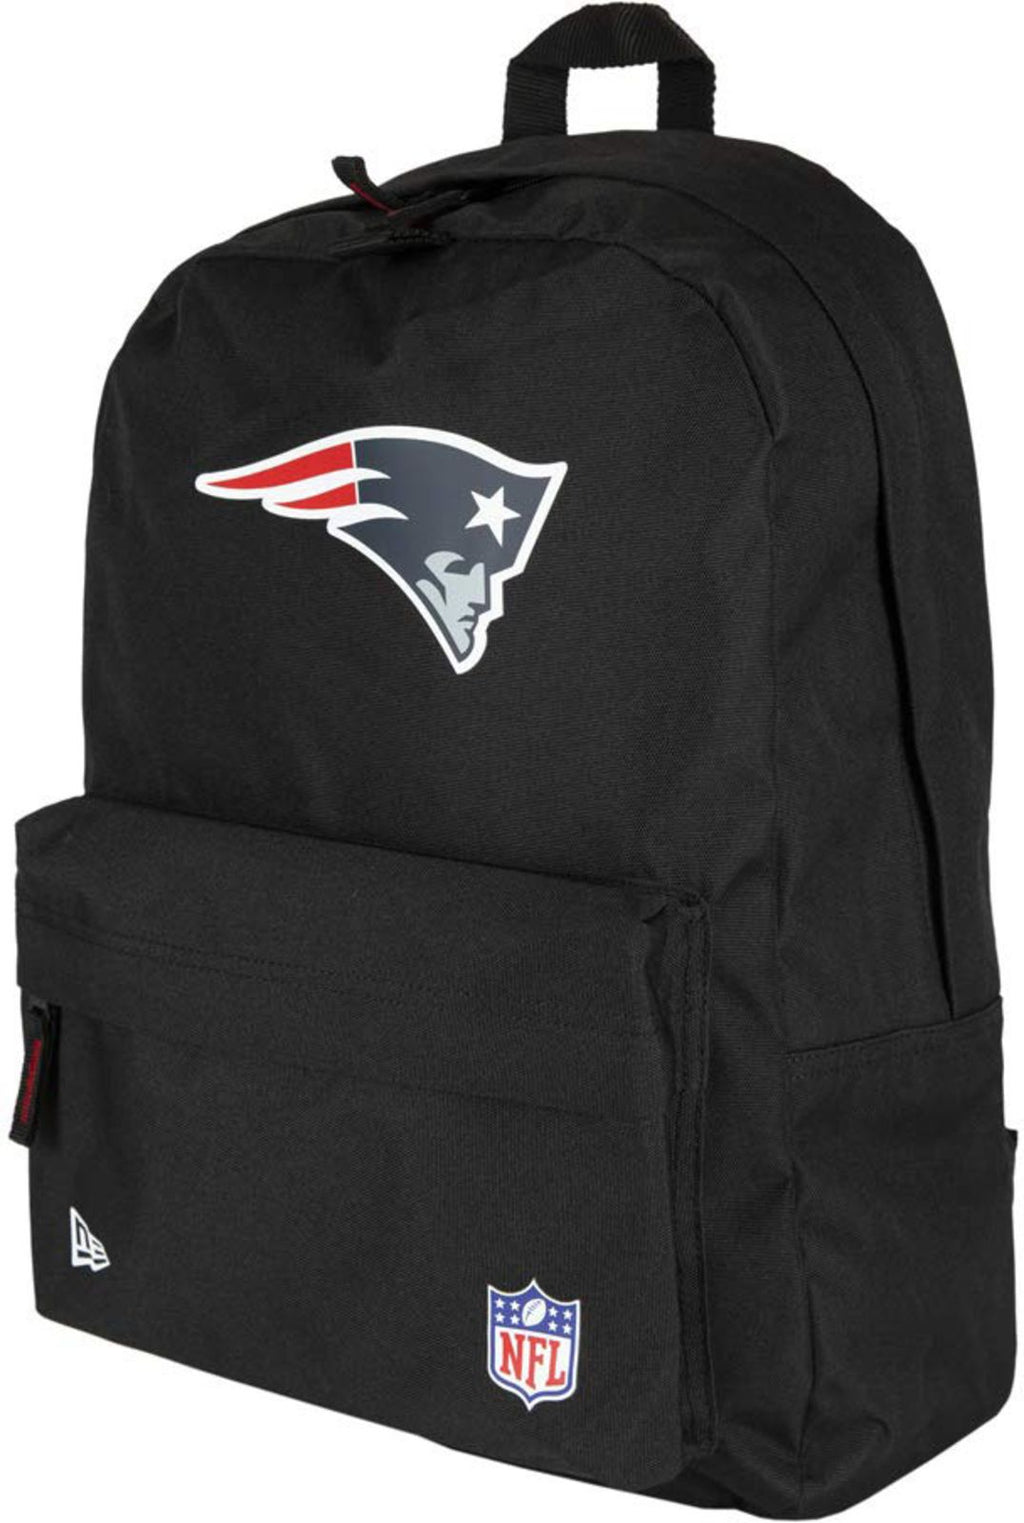 New Era New England Patriots Stadium Backpack Bag